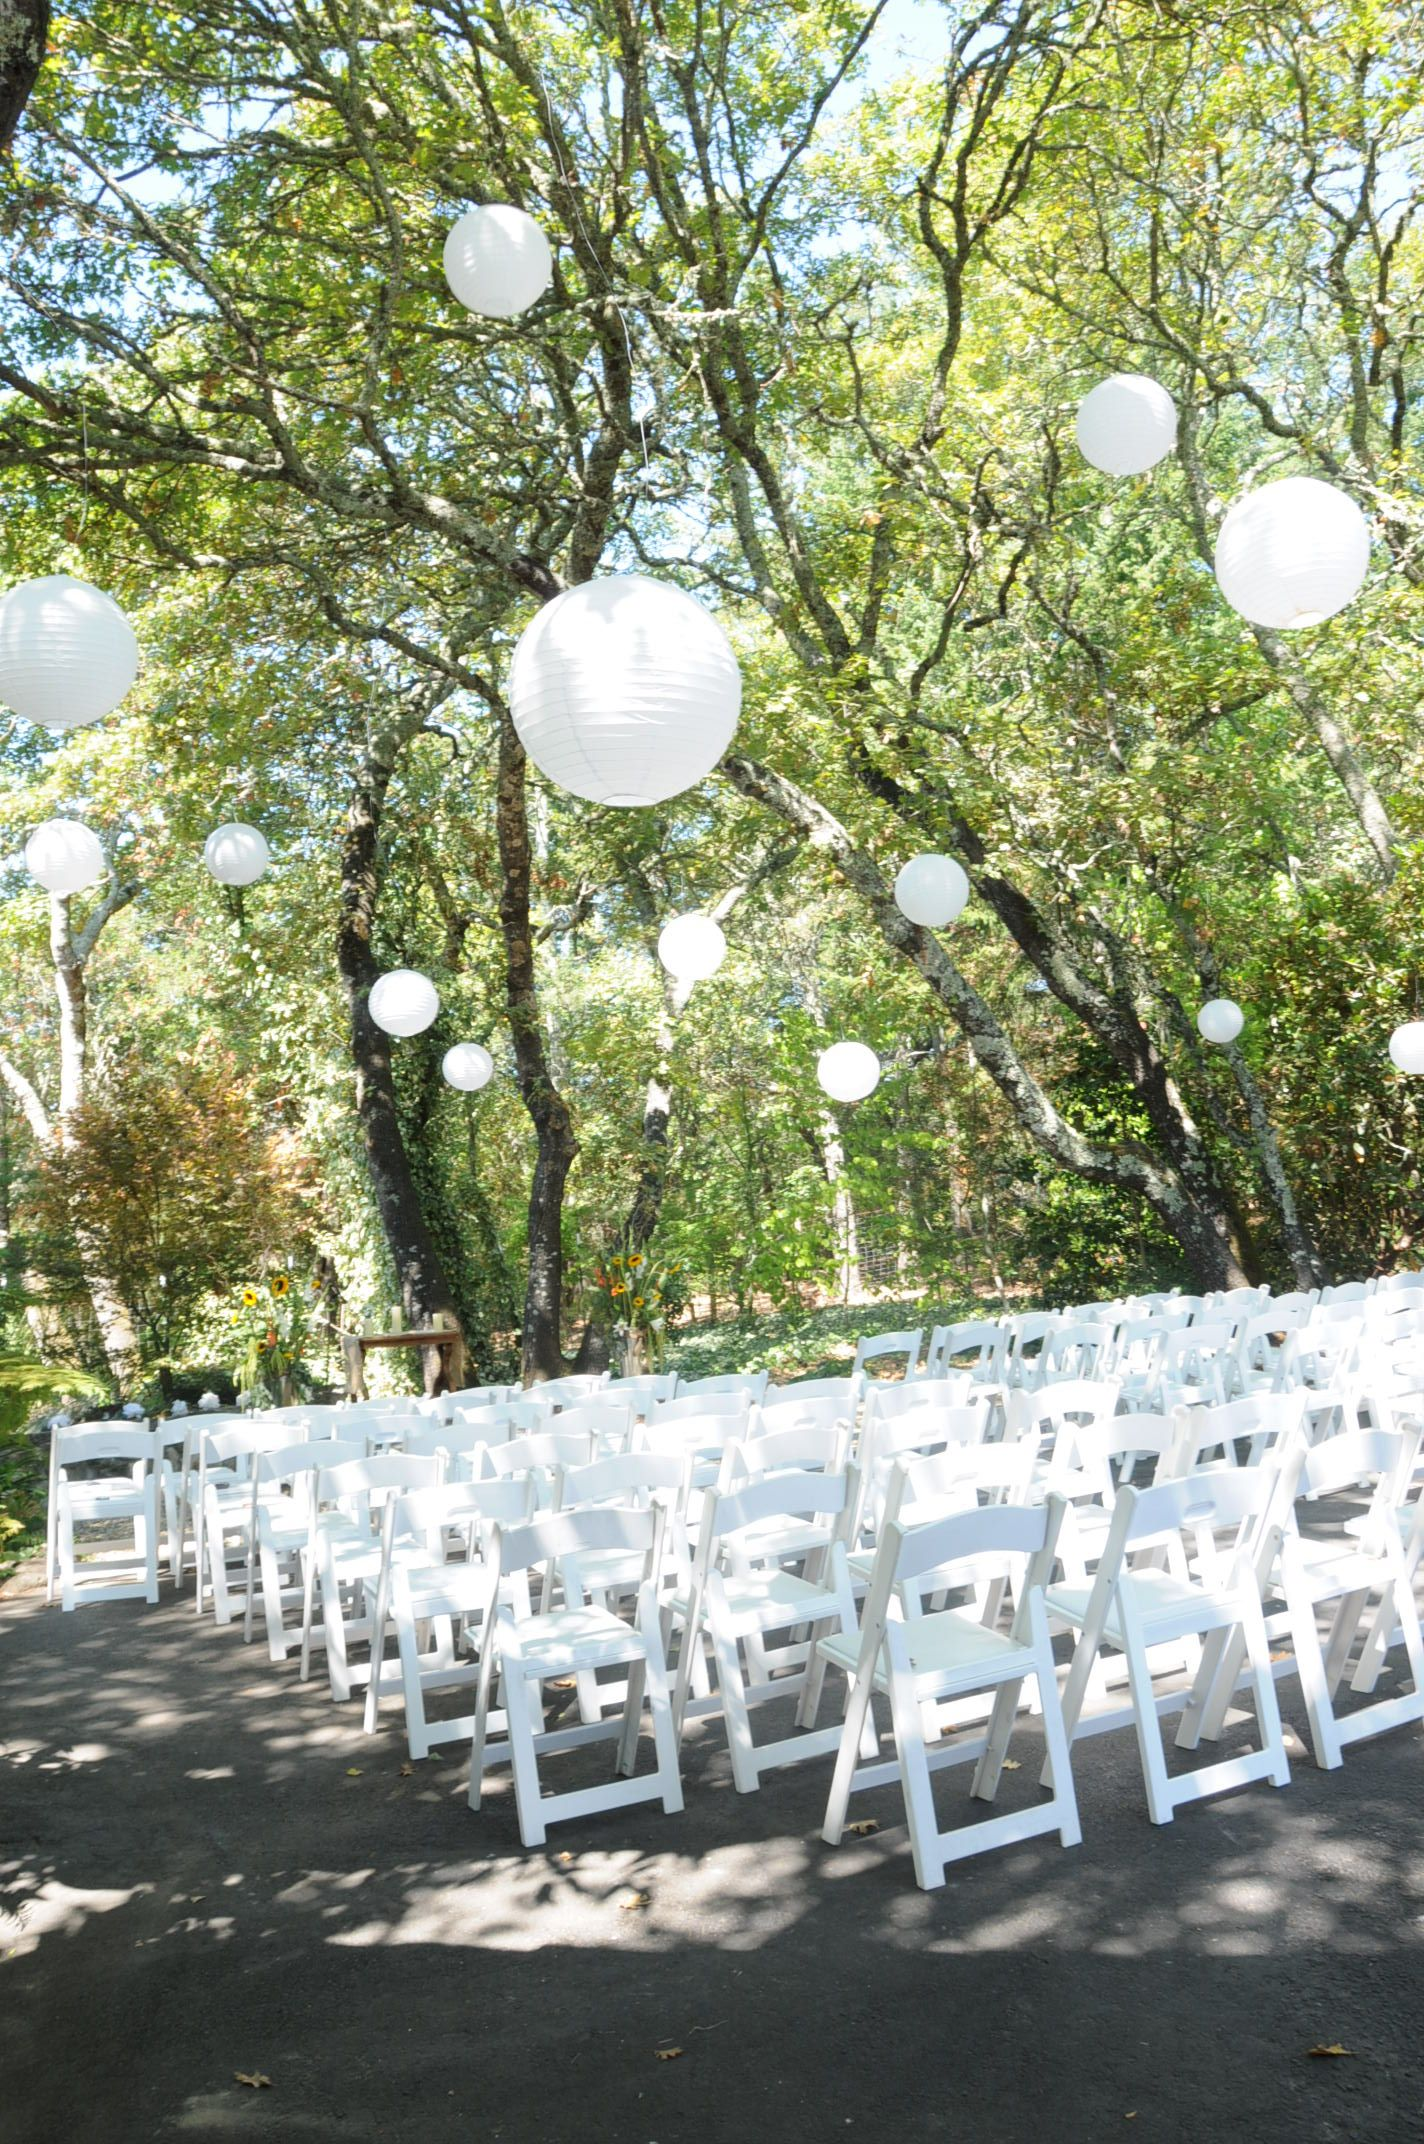 White paper lanterns hanging from trees during